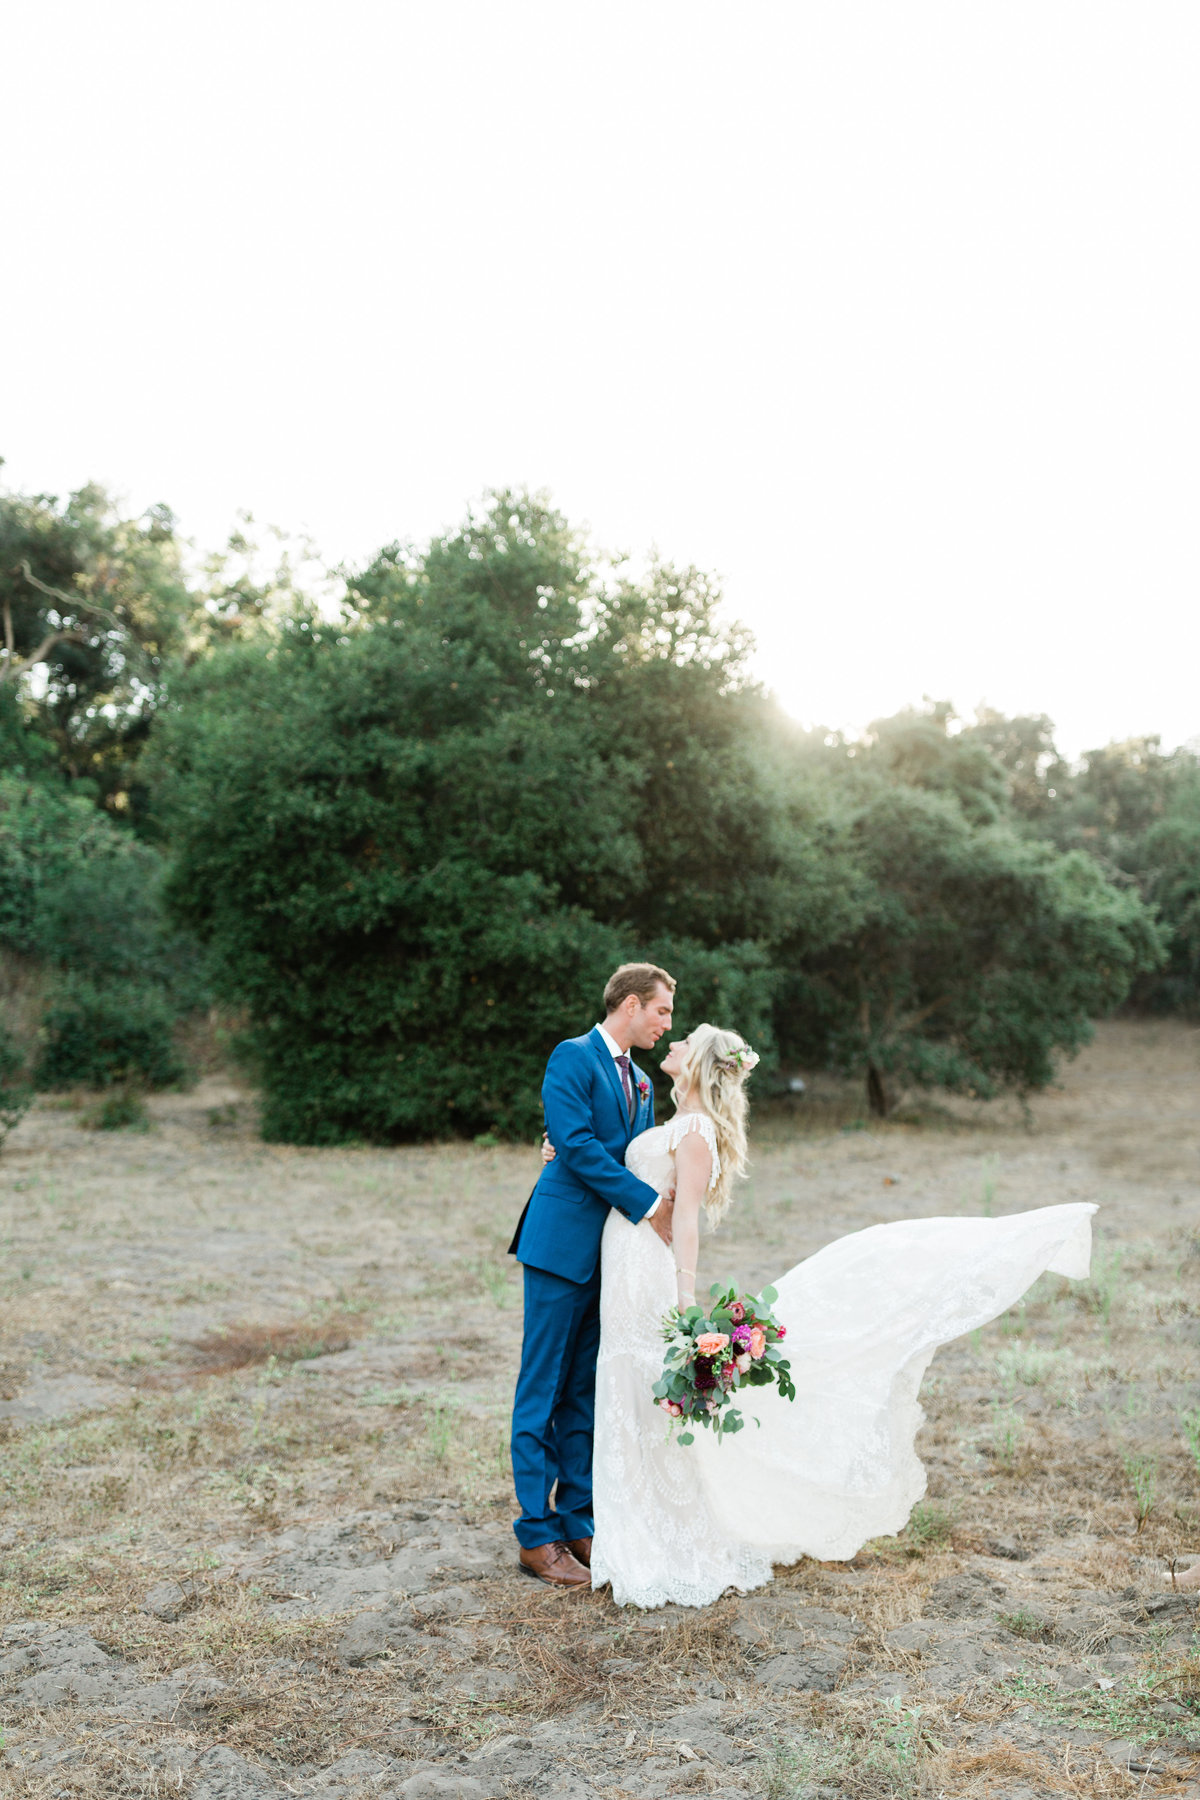 wedding portraits on a private ranch in the hills of arroyo grande